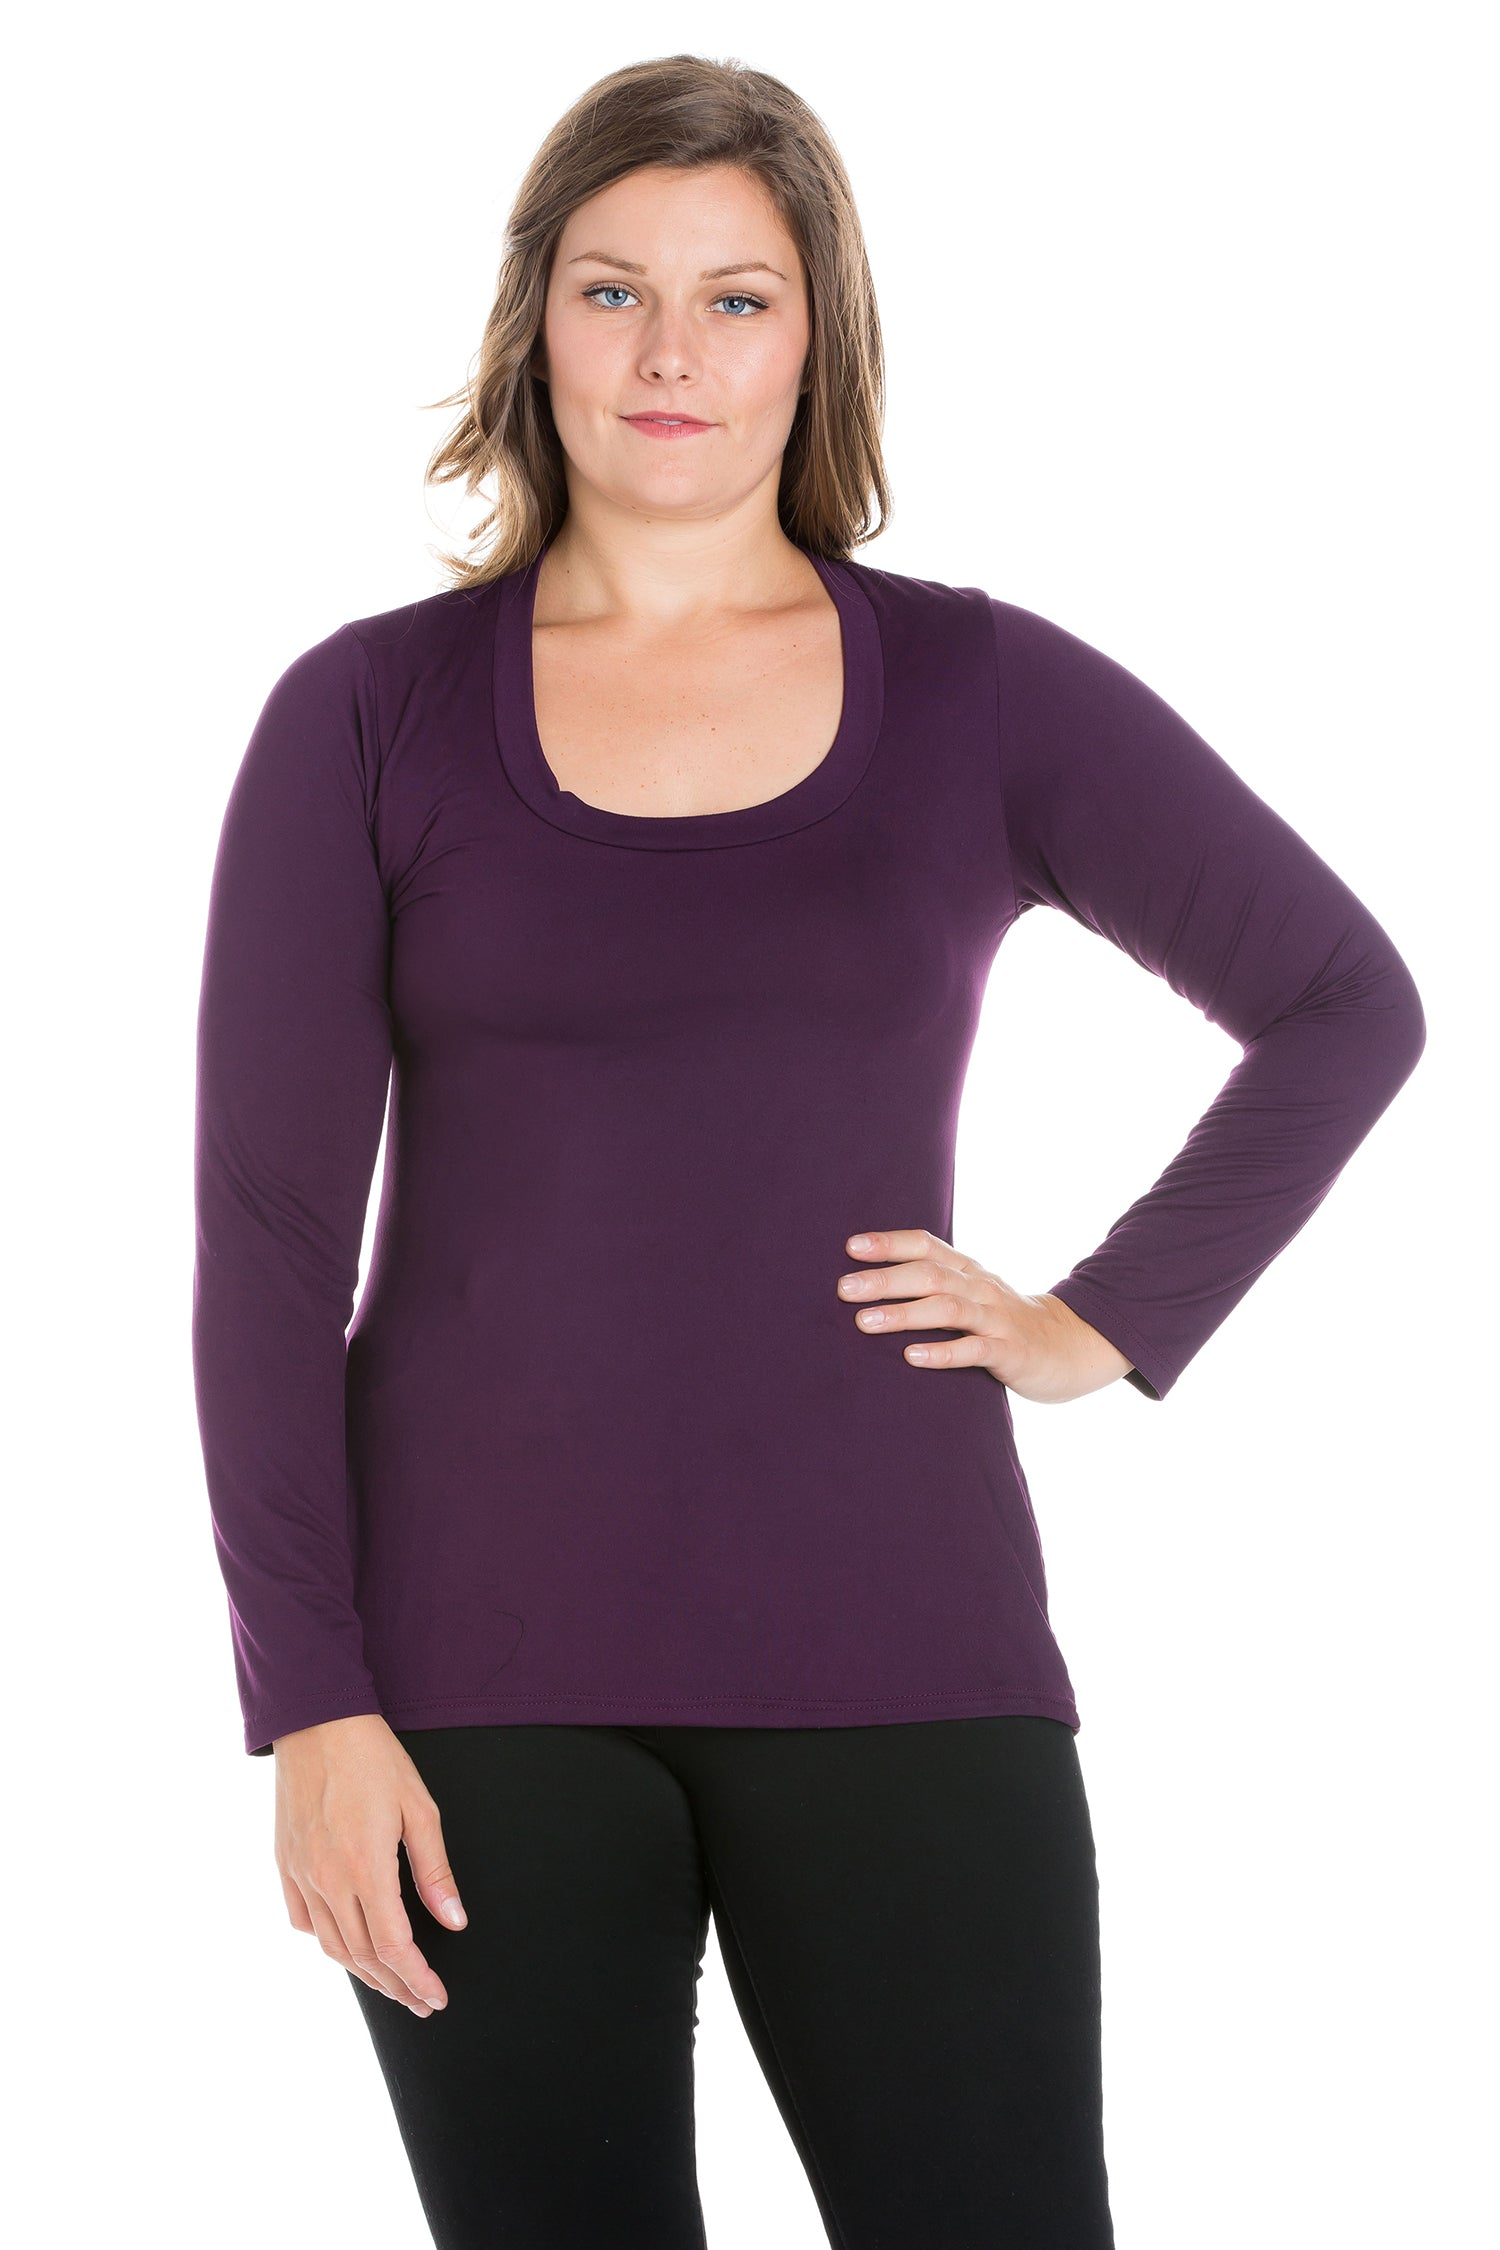 24seven Comfort Apparel Solid Long Sleeve Scoop Neck Plus Size Womens Tee-TOPS-24Seven Comfort Apparel-PURPLE-1X-24/7 Comfort Apparel